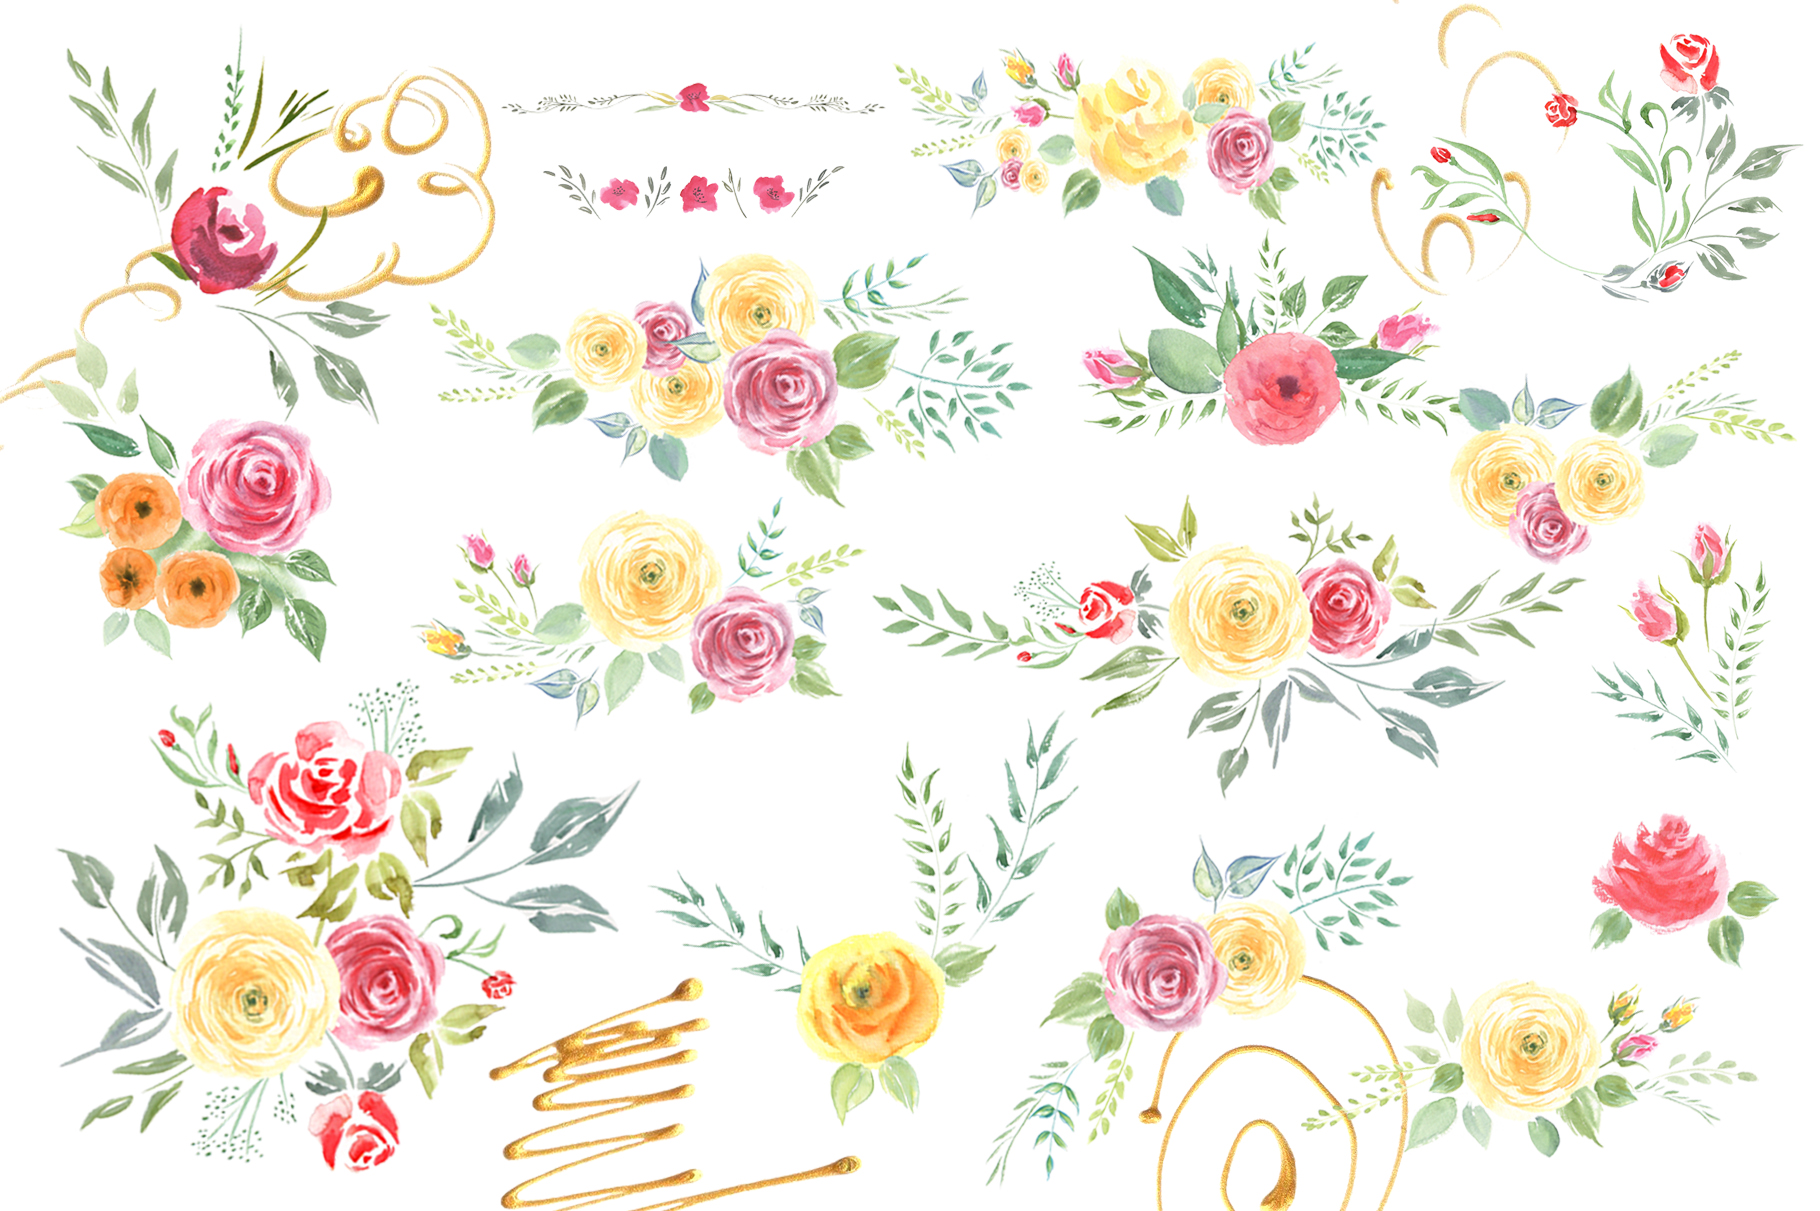 Queen of Flowers watercolor collection example image 14